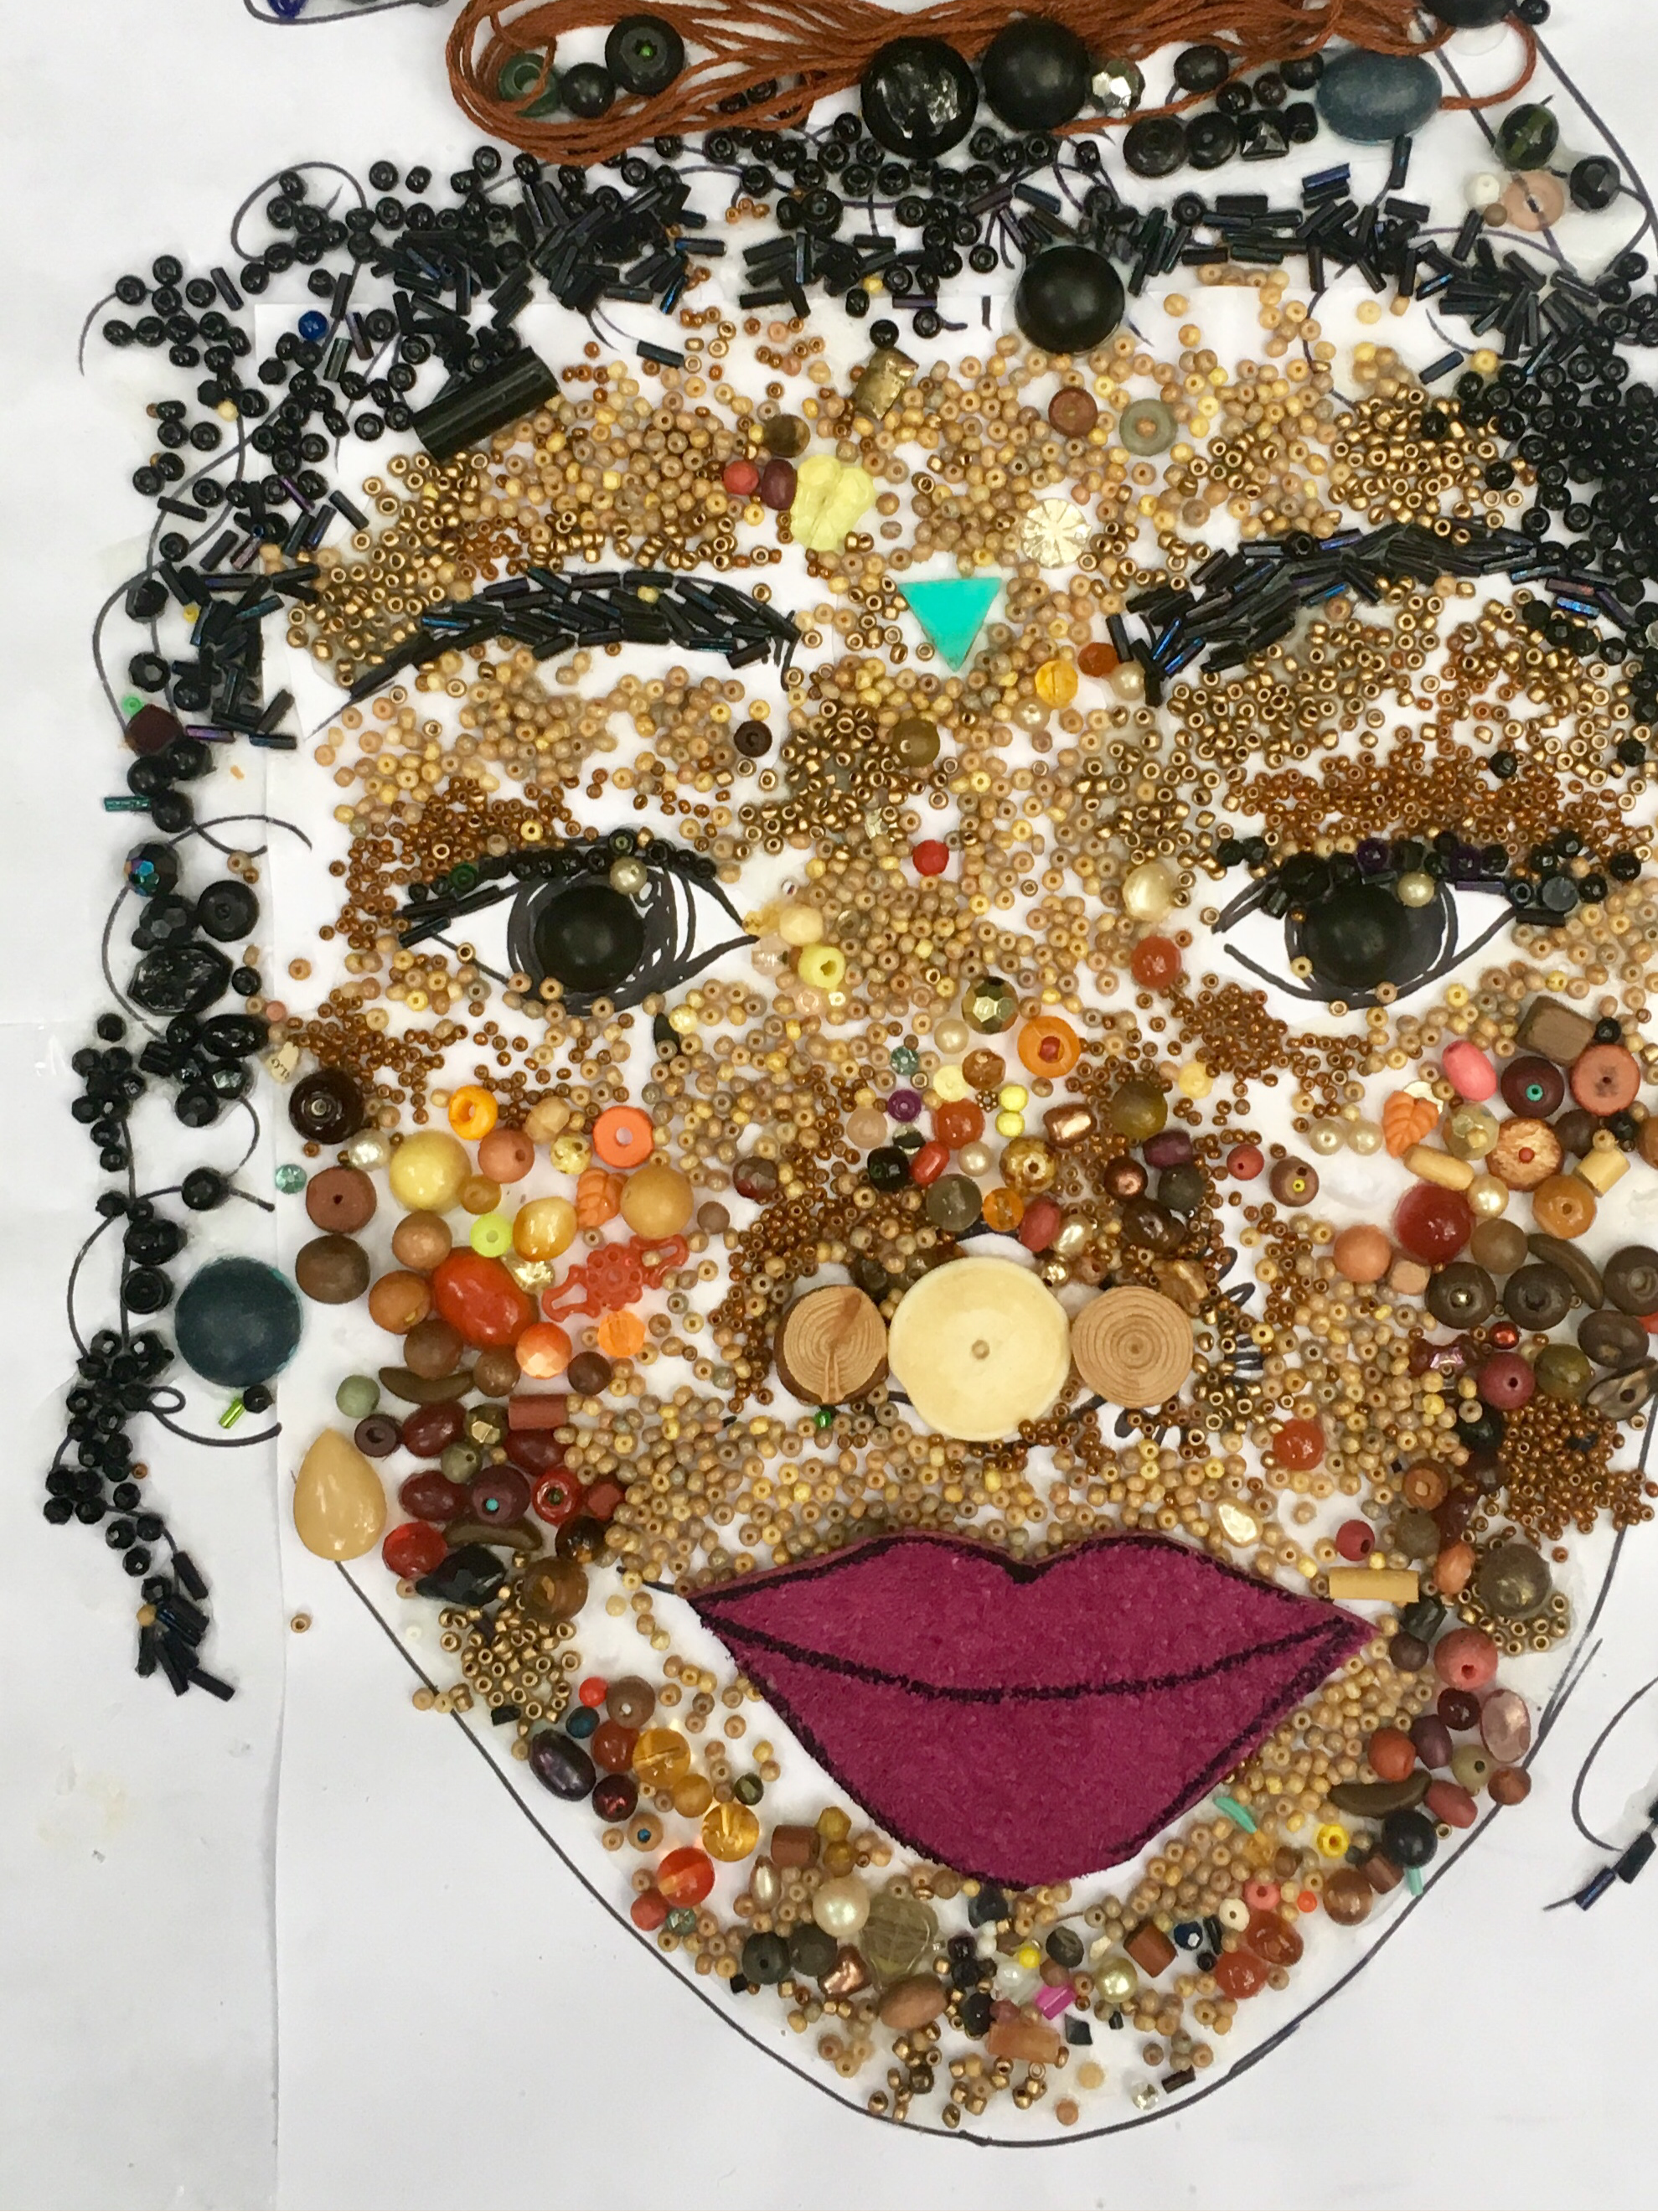 - Honestly- Frida Khalo was the first woman to empower the selfie and our Kid's evening class is created to empower your little ones and give you a night out! We'll explore coloring with beads and create portraits of our own, make necklaces or bracelets, and end with story telling time. Three hours of fun filled and educational play! Click to register onlineCall us at 512-693-2323 to register by phone.